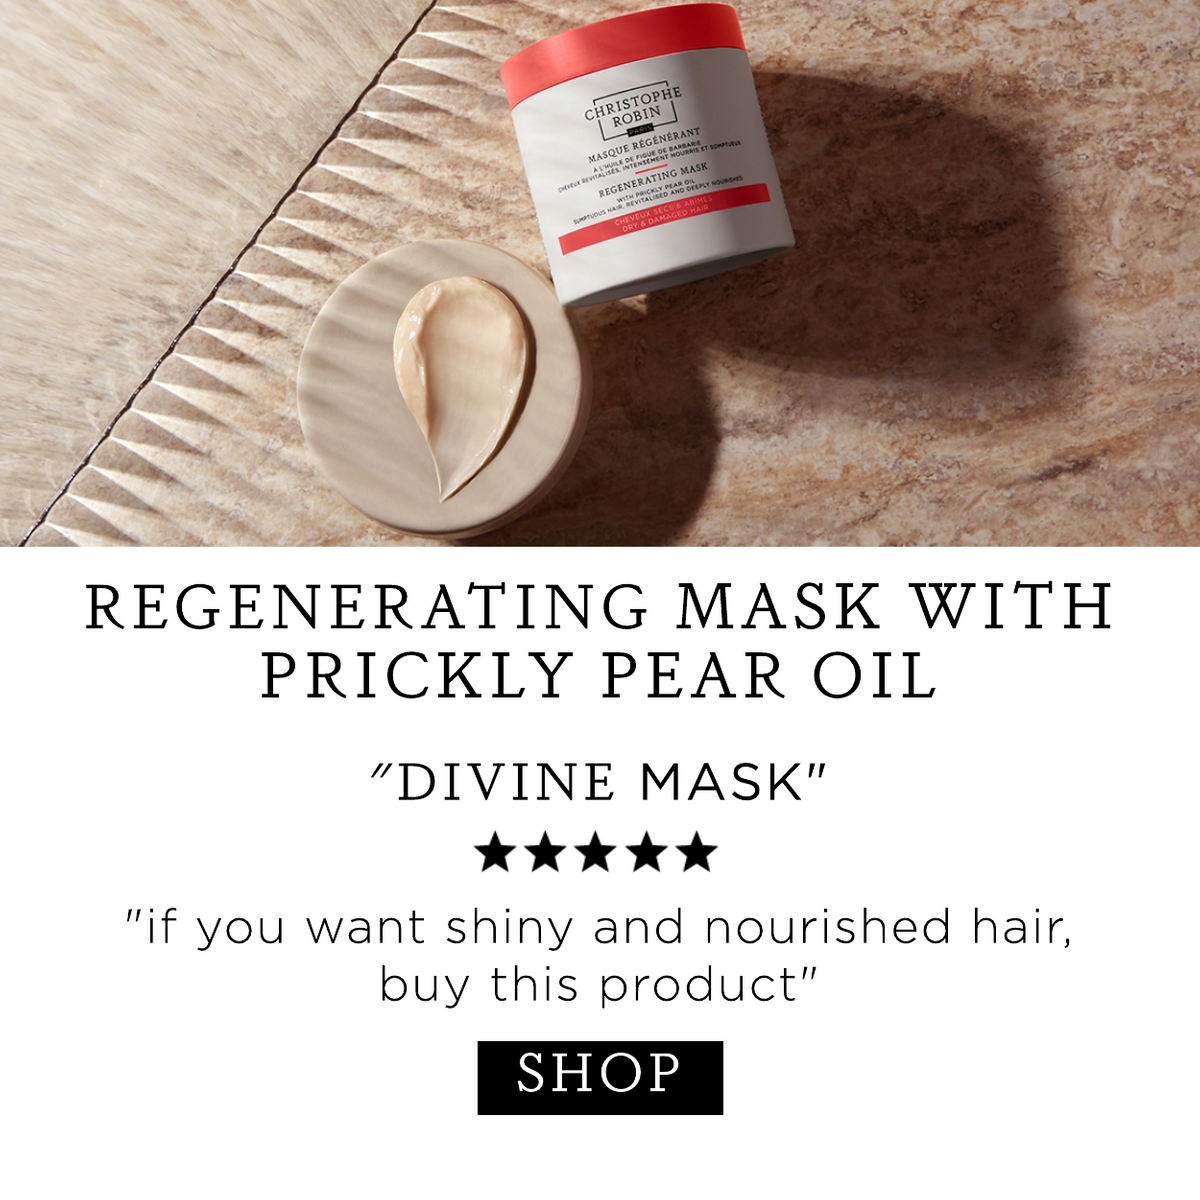 Regenerating Mask with Prickly Pear Oil - 5 star review: